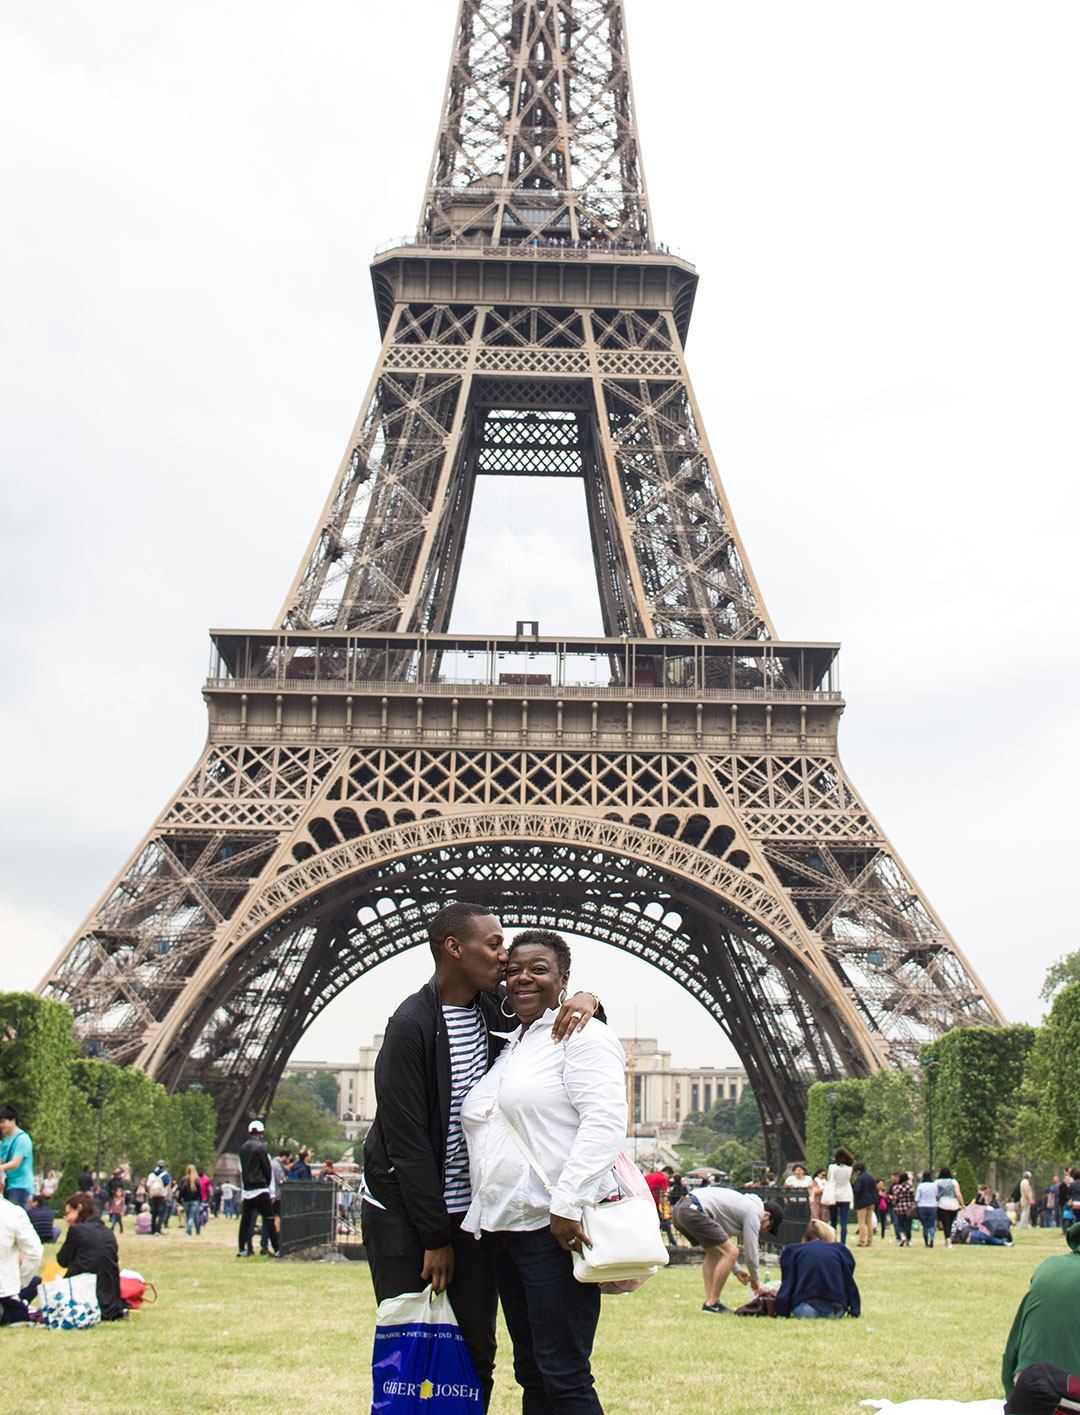 calvin-walker-paris-eiffel-tower.jpg